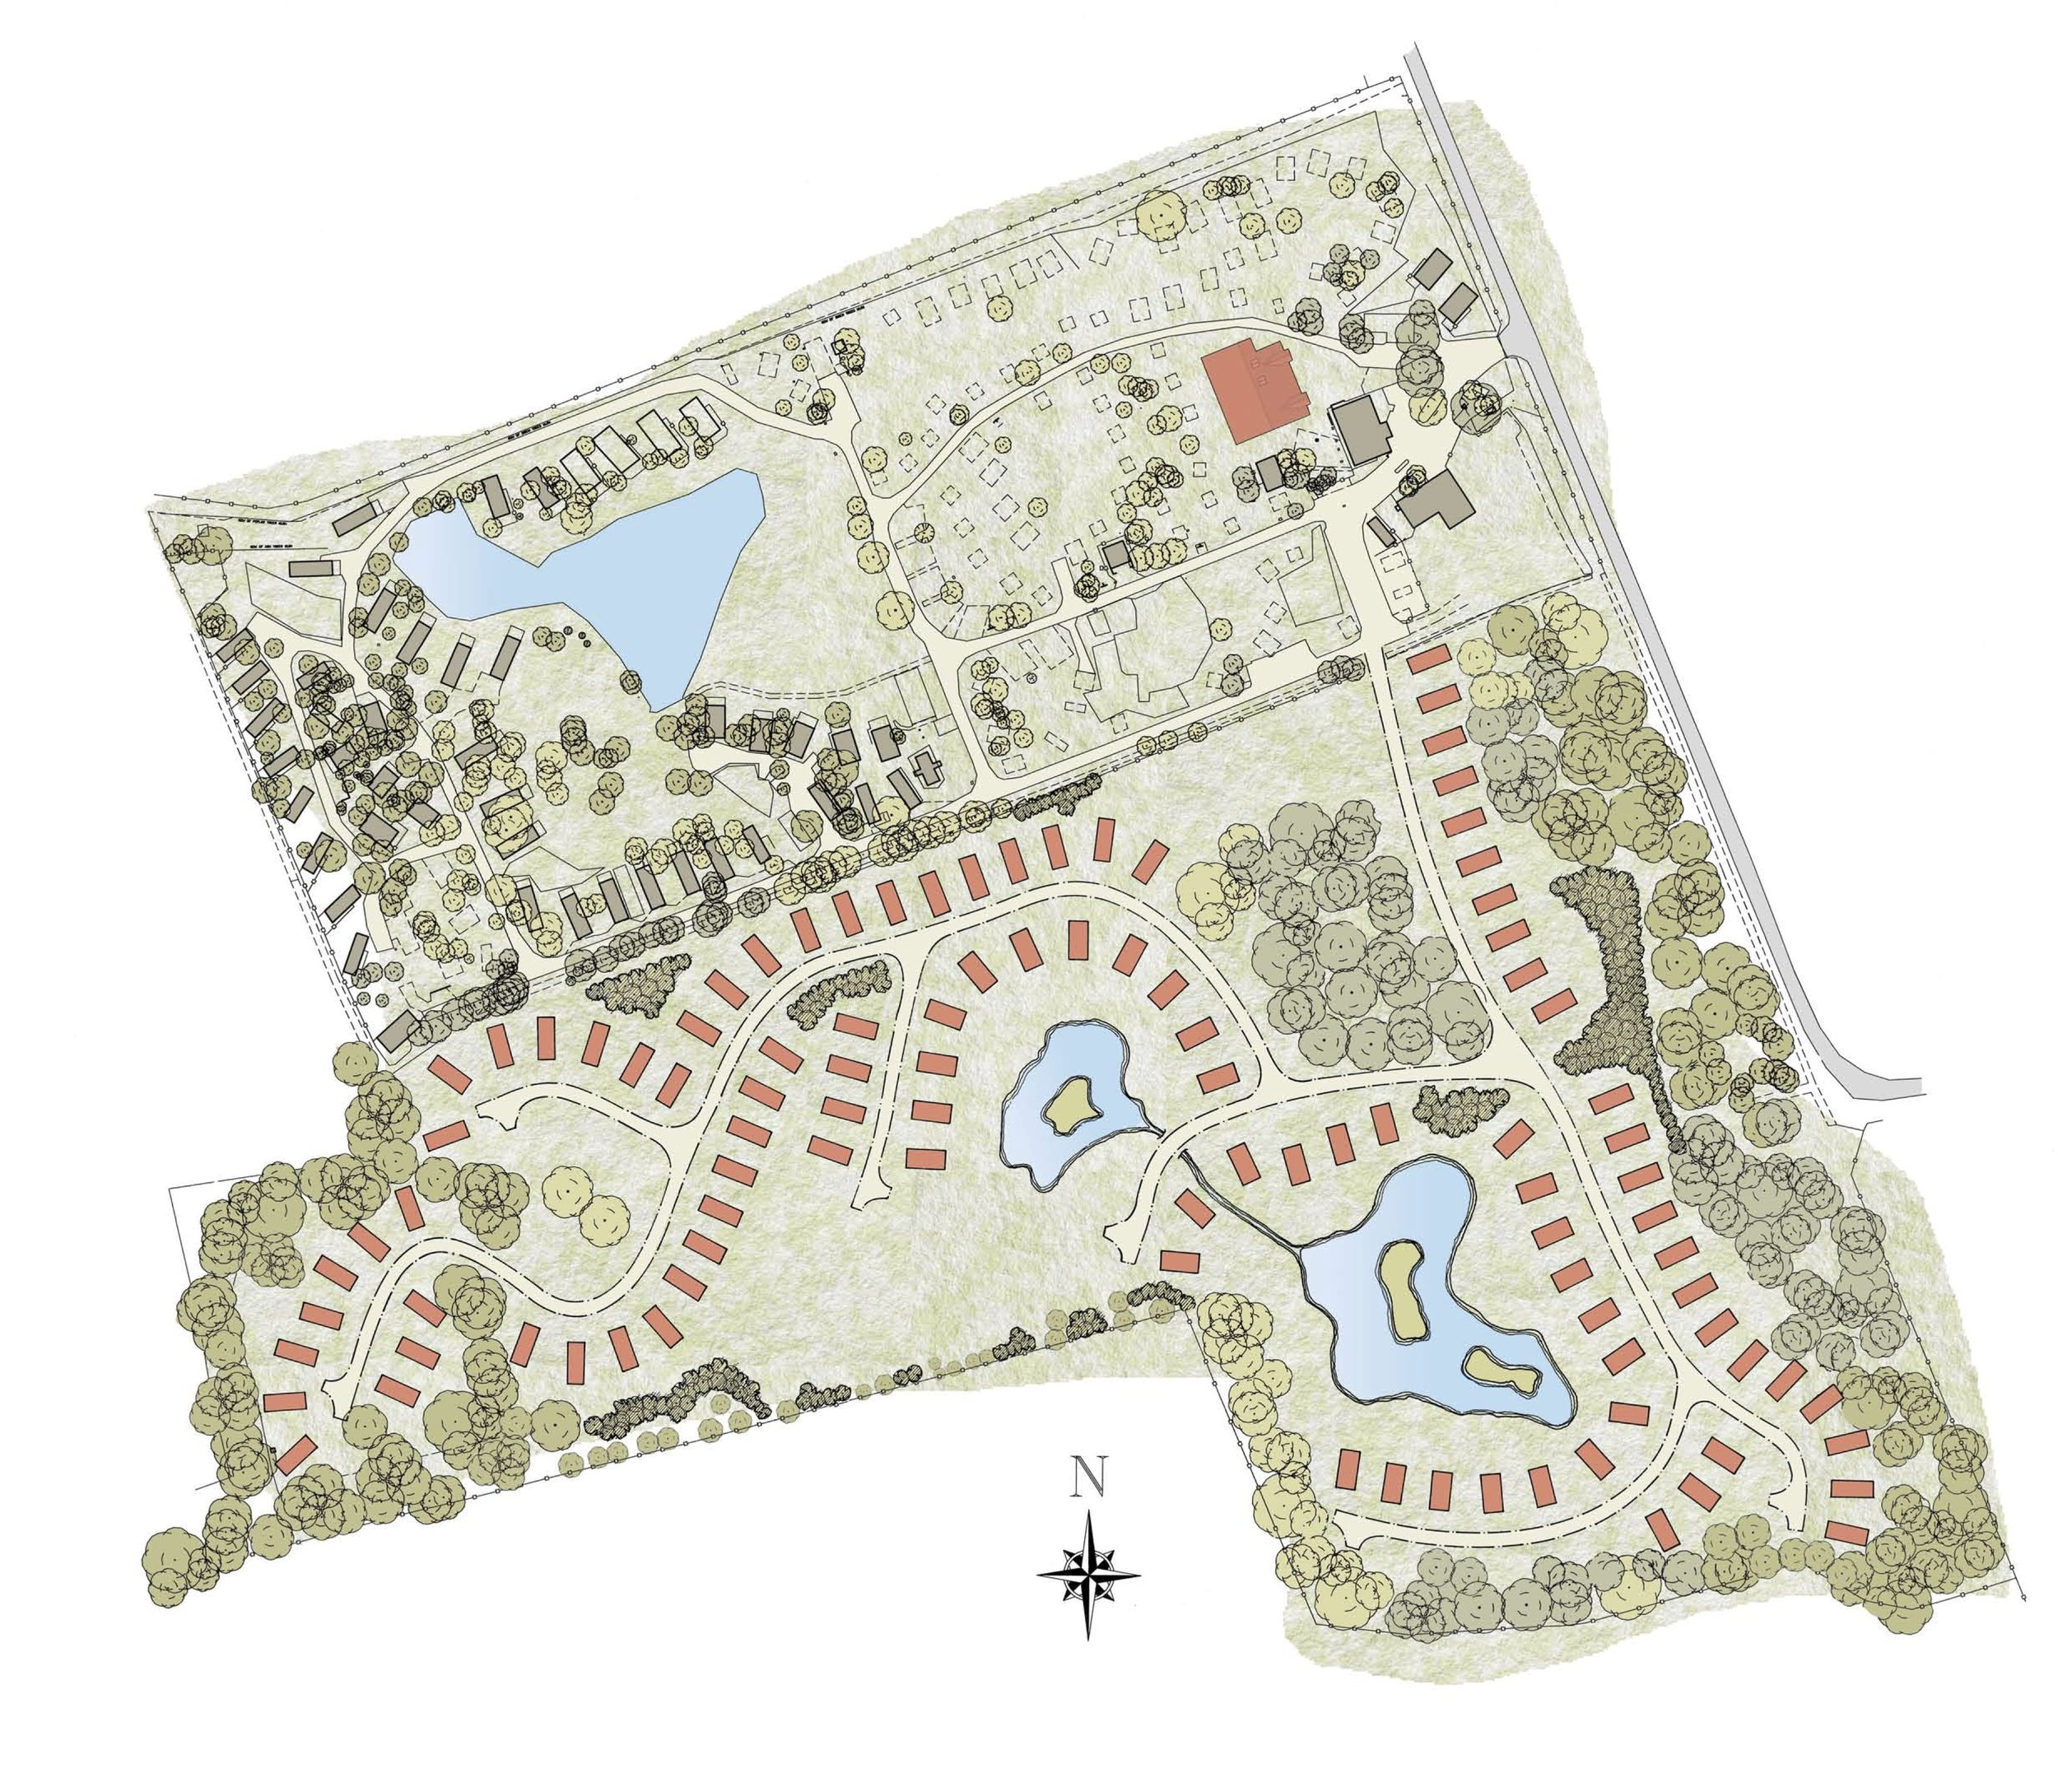 Approved Proposed Site Plan